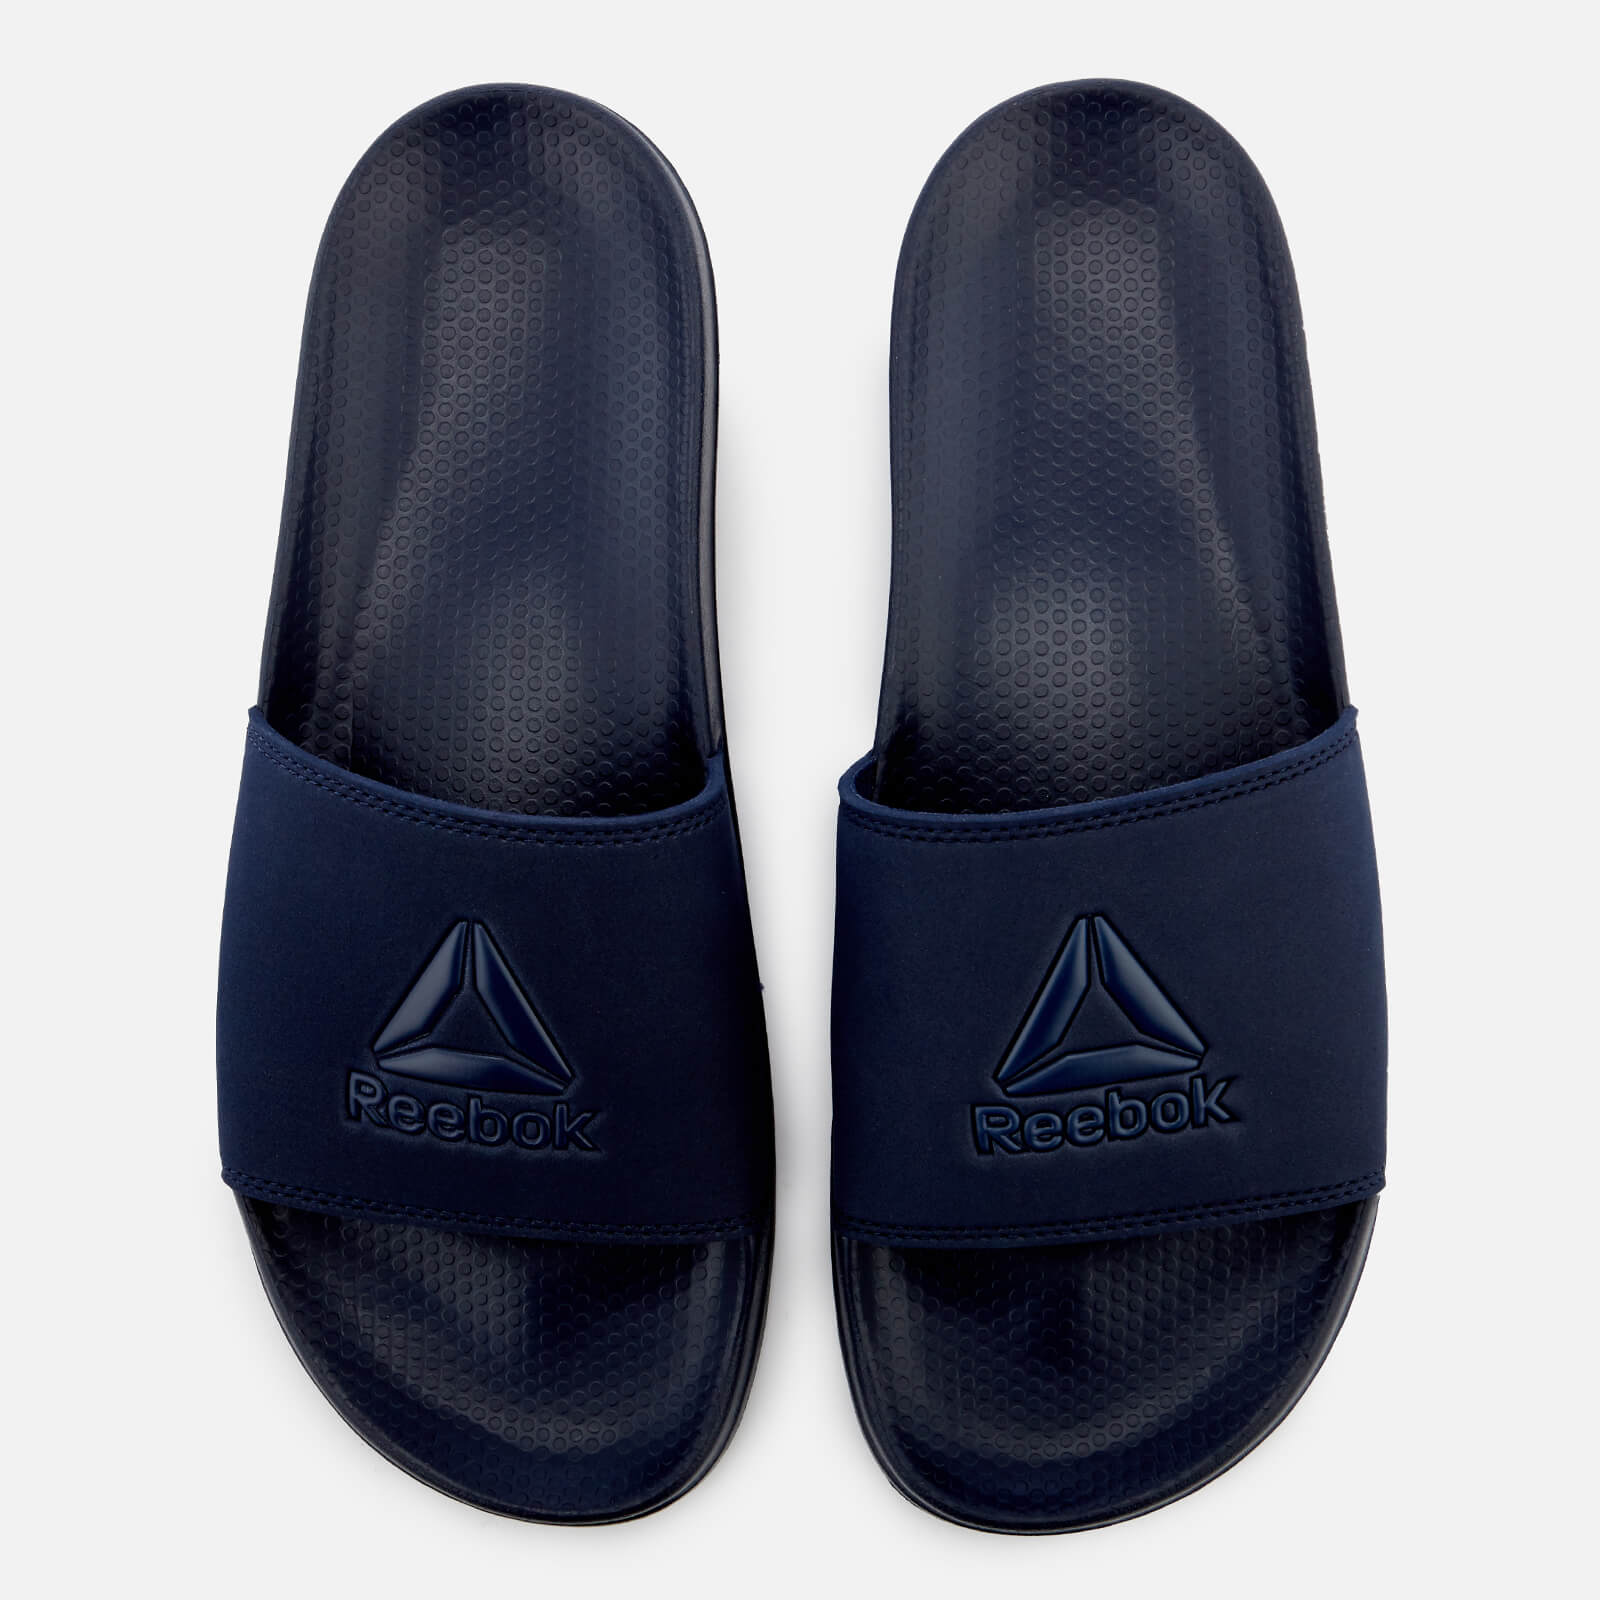 86fdca1b5 Reebok Men s Fulgere Slide Sandals - Navy Sports   Leisure